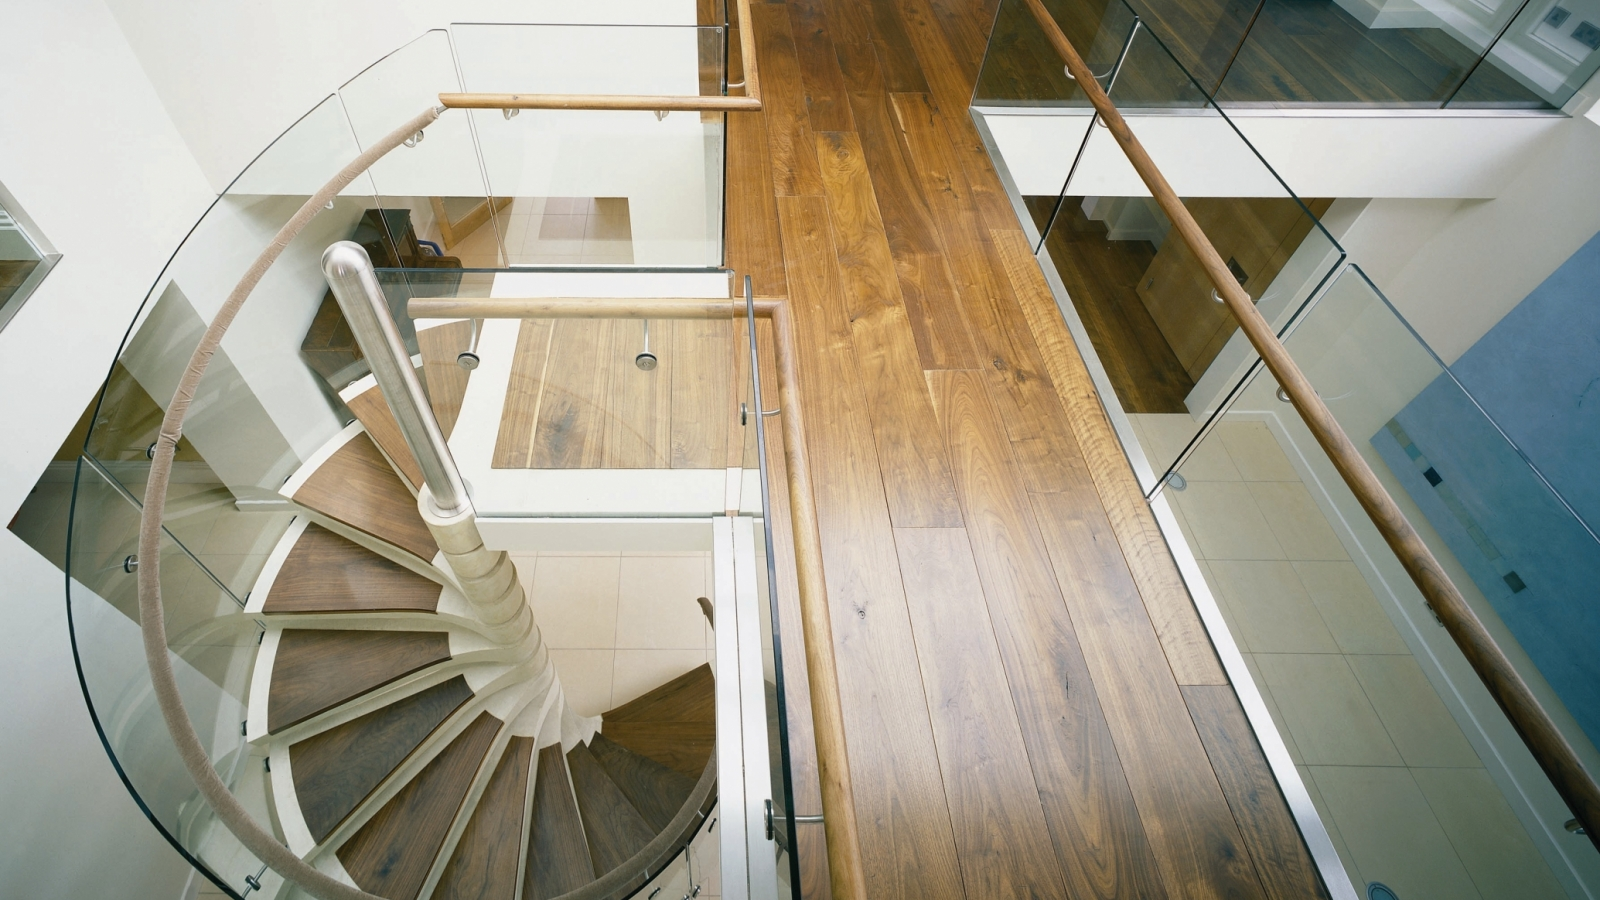 Winder Staircases Are A Straight Flight Of Stairs That Curve Around A  Corner Which Could Save Space As There Is No Need For A Landing. Although  Spiral ...